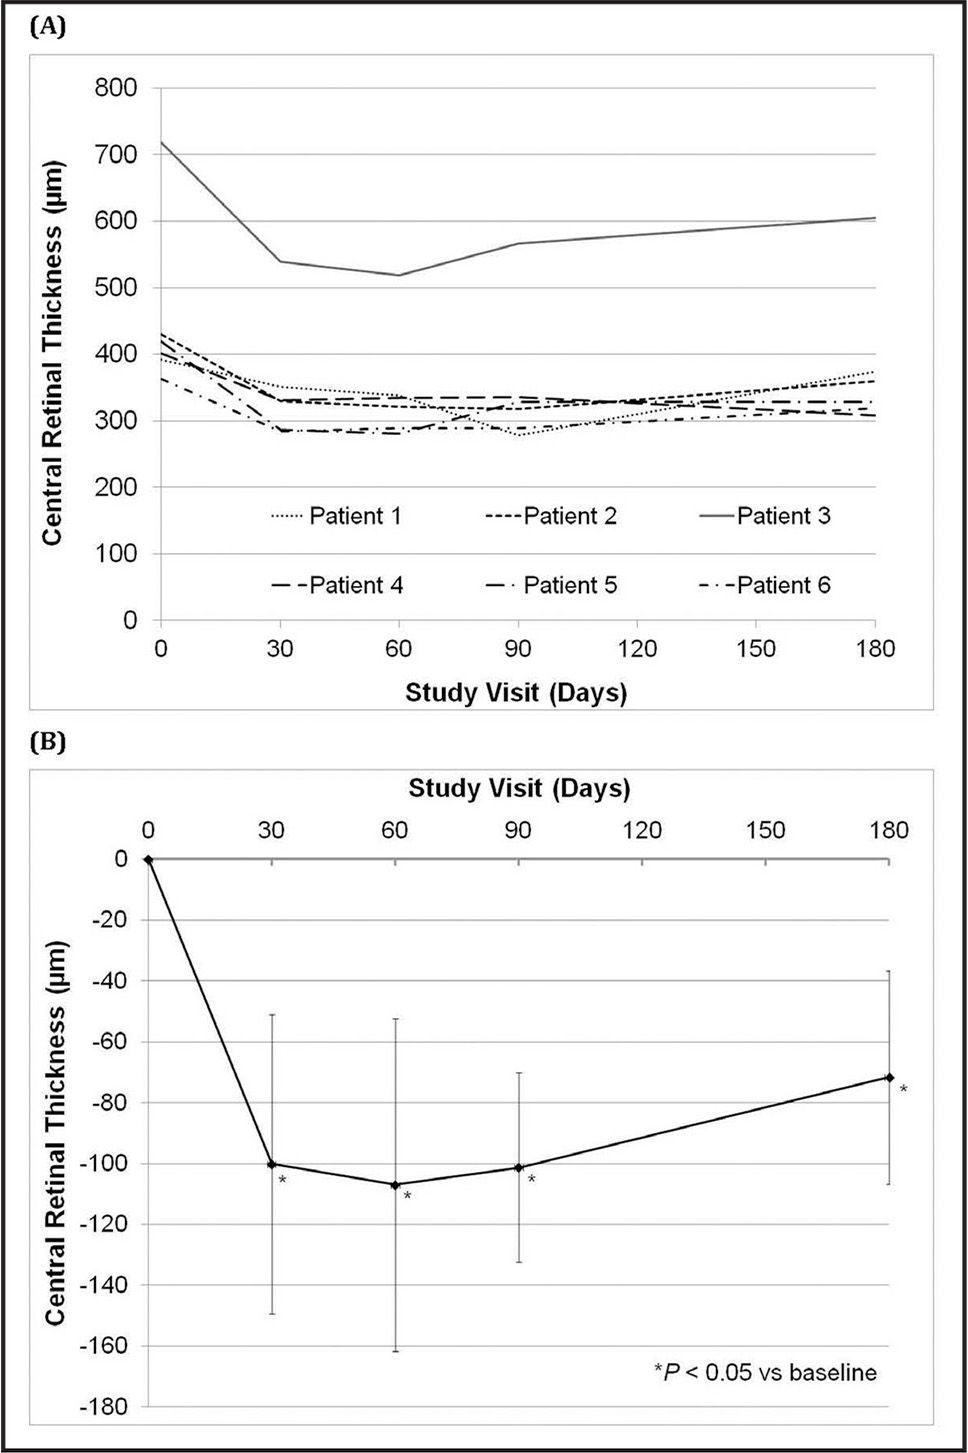 Central retinal thickness (CRT) over 6 months after treatment with an intravitreal DEX implant. (A) Individual patient data. Patient 3 (in gray) had an epiretinal membrane at baseline. (B) The mean change from baseline. Error bars represent the SD of the mean. A significant decrease in CRT was observed on day 30 and maintained through day 180 (*P < .05).